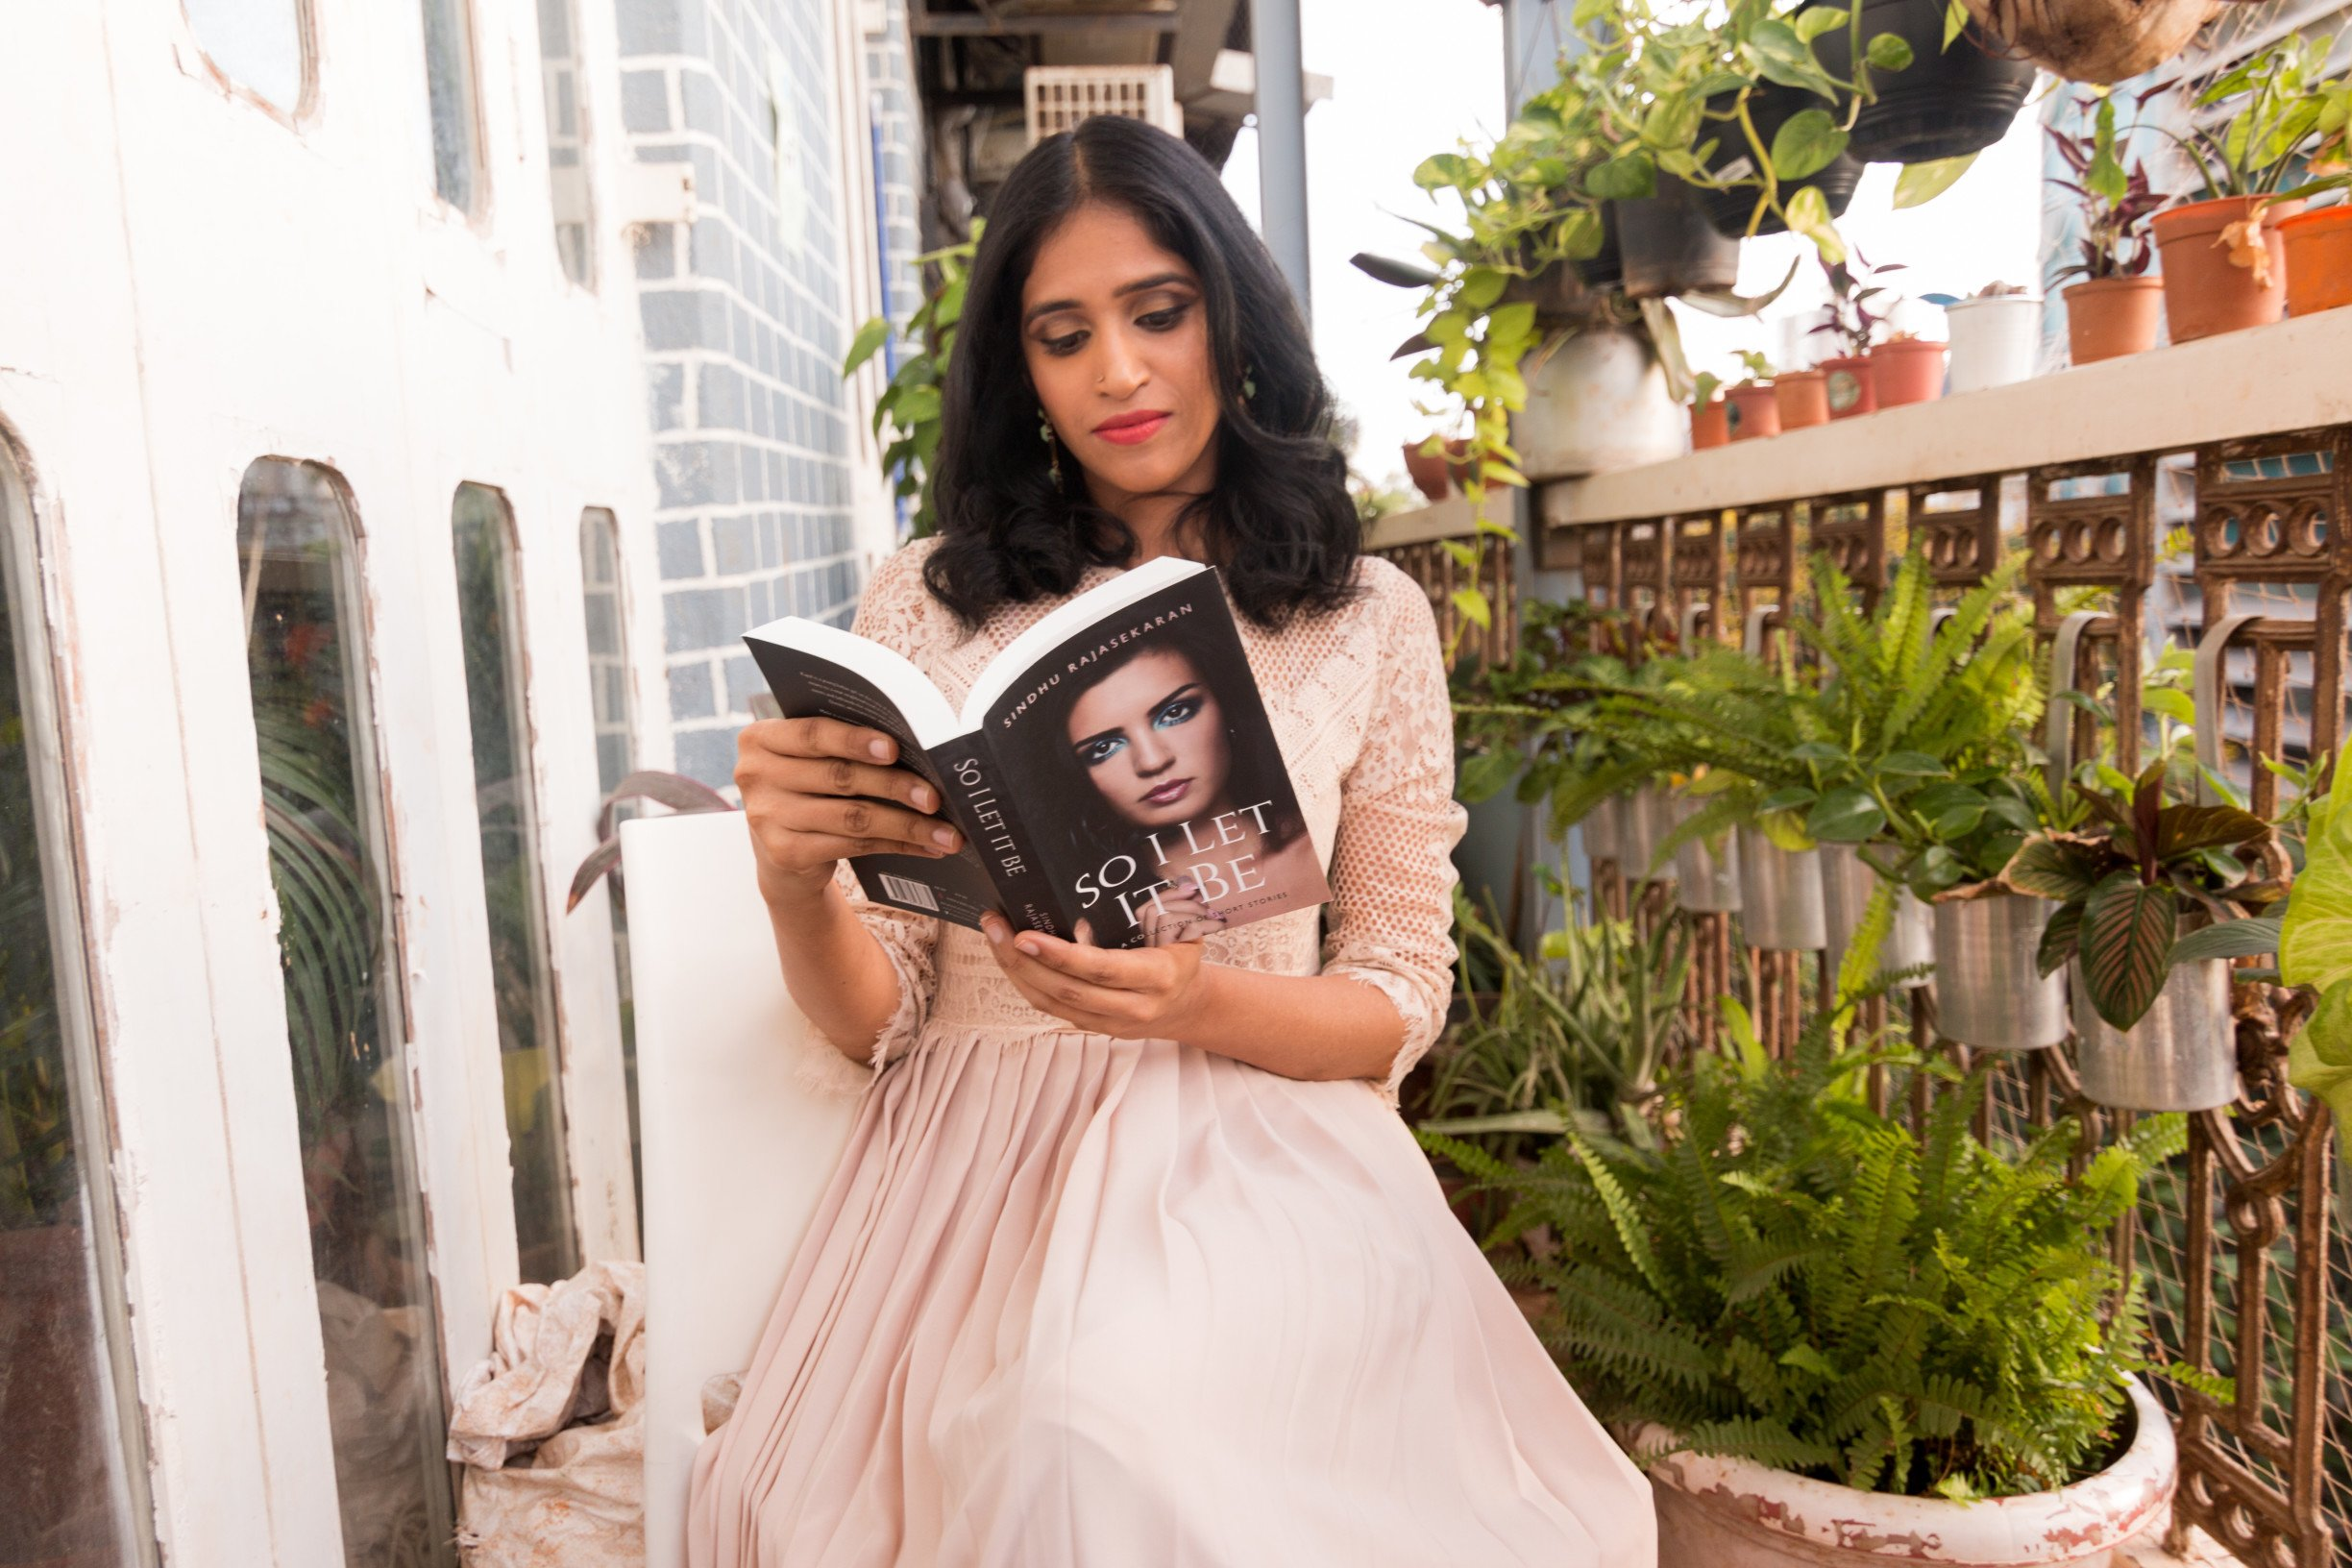 My feminism is about giving femininity a wall: Author Sindhu Rajasekaran